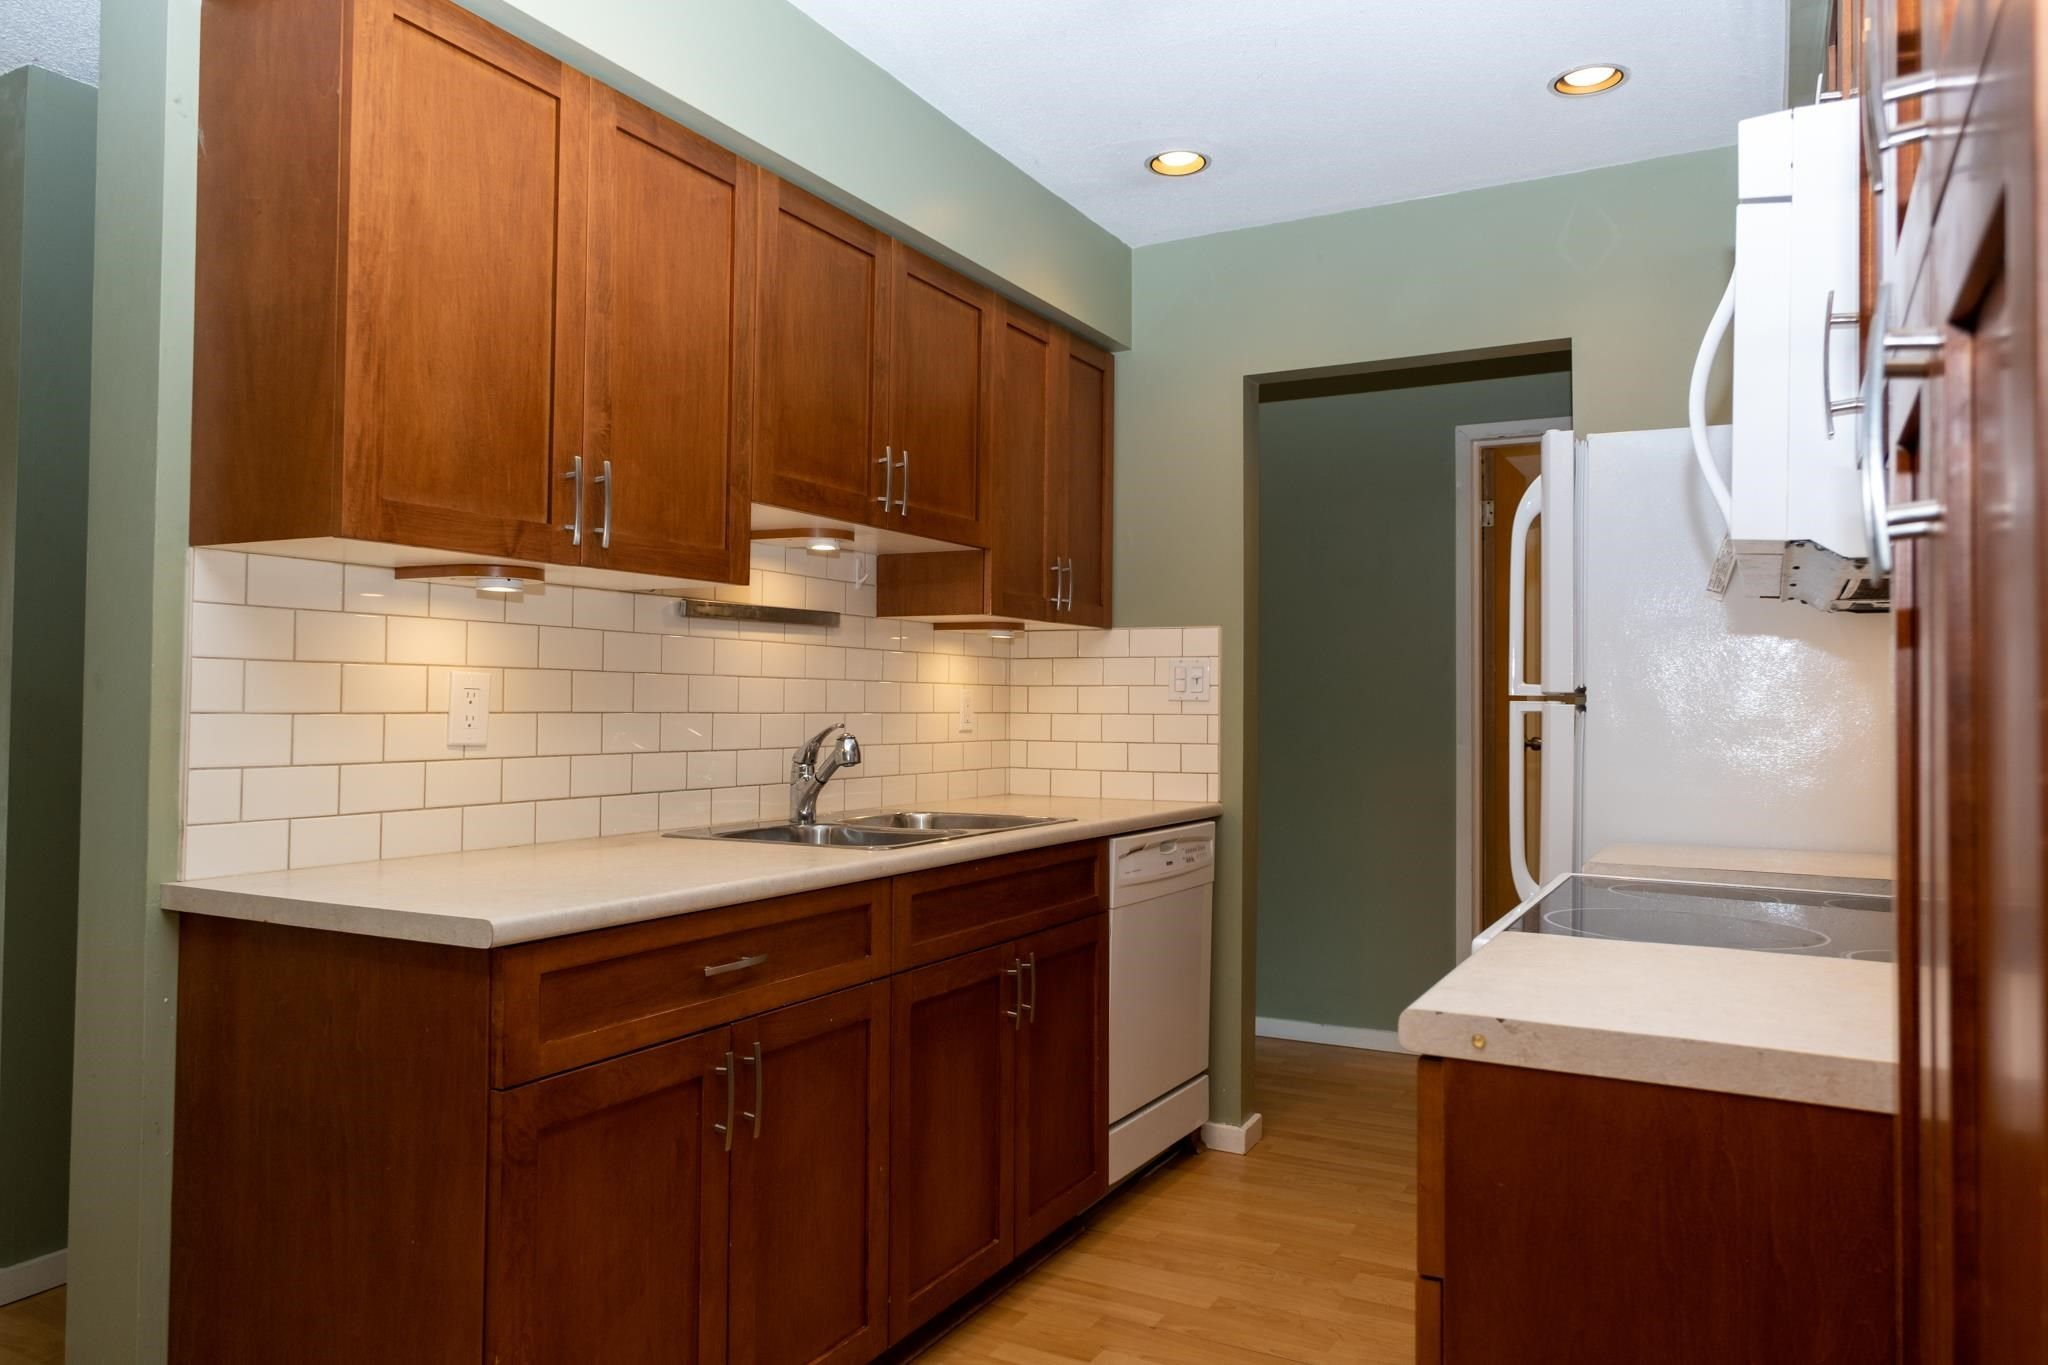 """Main Photo: 312 4363 HALIFAX Street in Burnaby: Brentwood Park Condo for sale in """"Brent Gardens"""" (Burnaby North)  : MLS®# R2601508"""